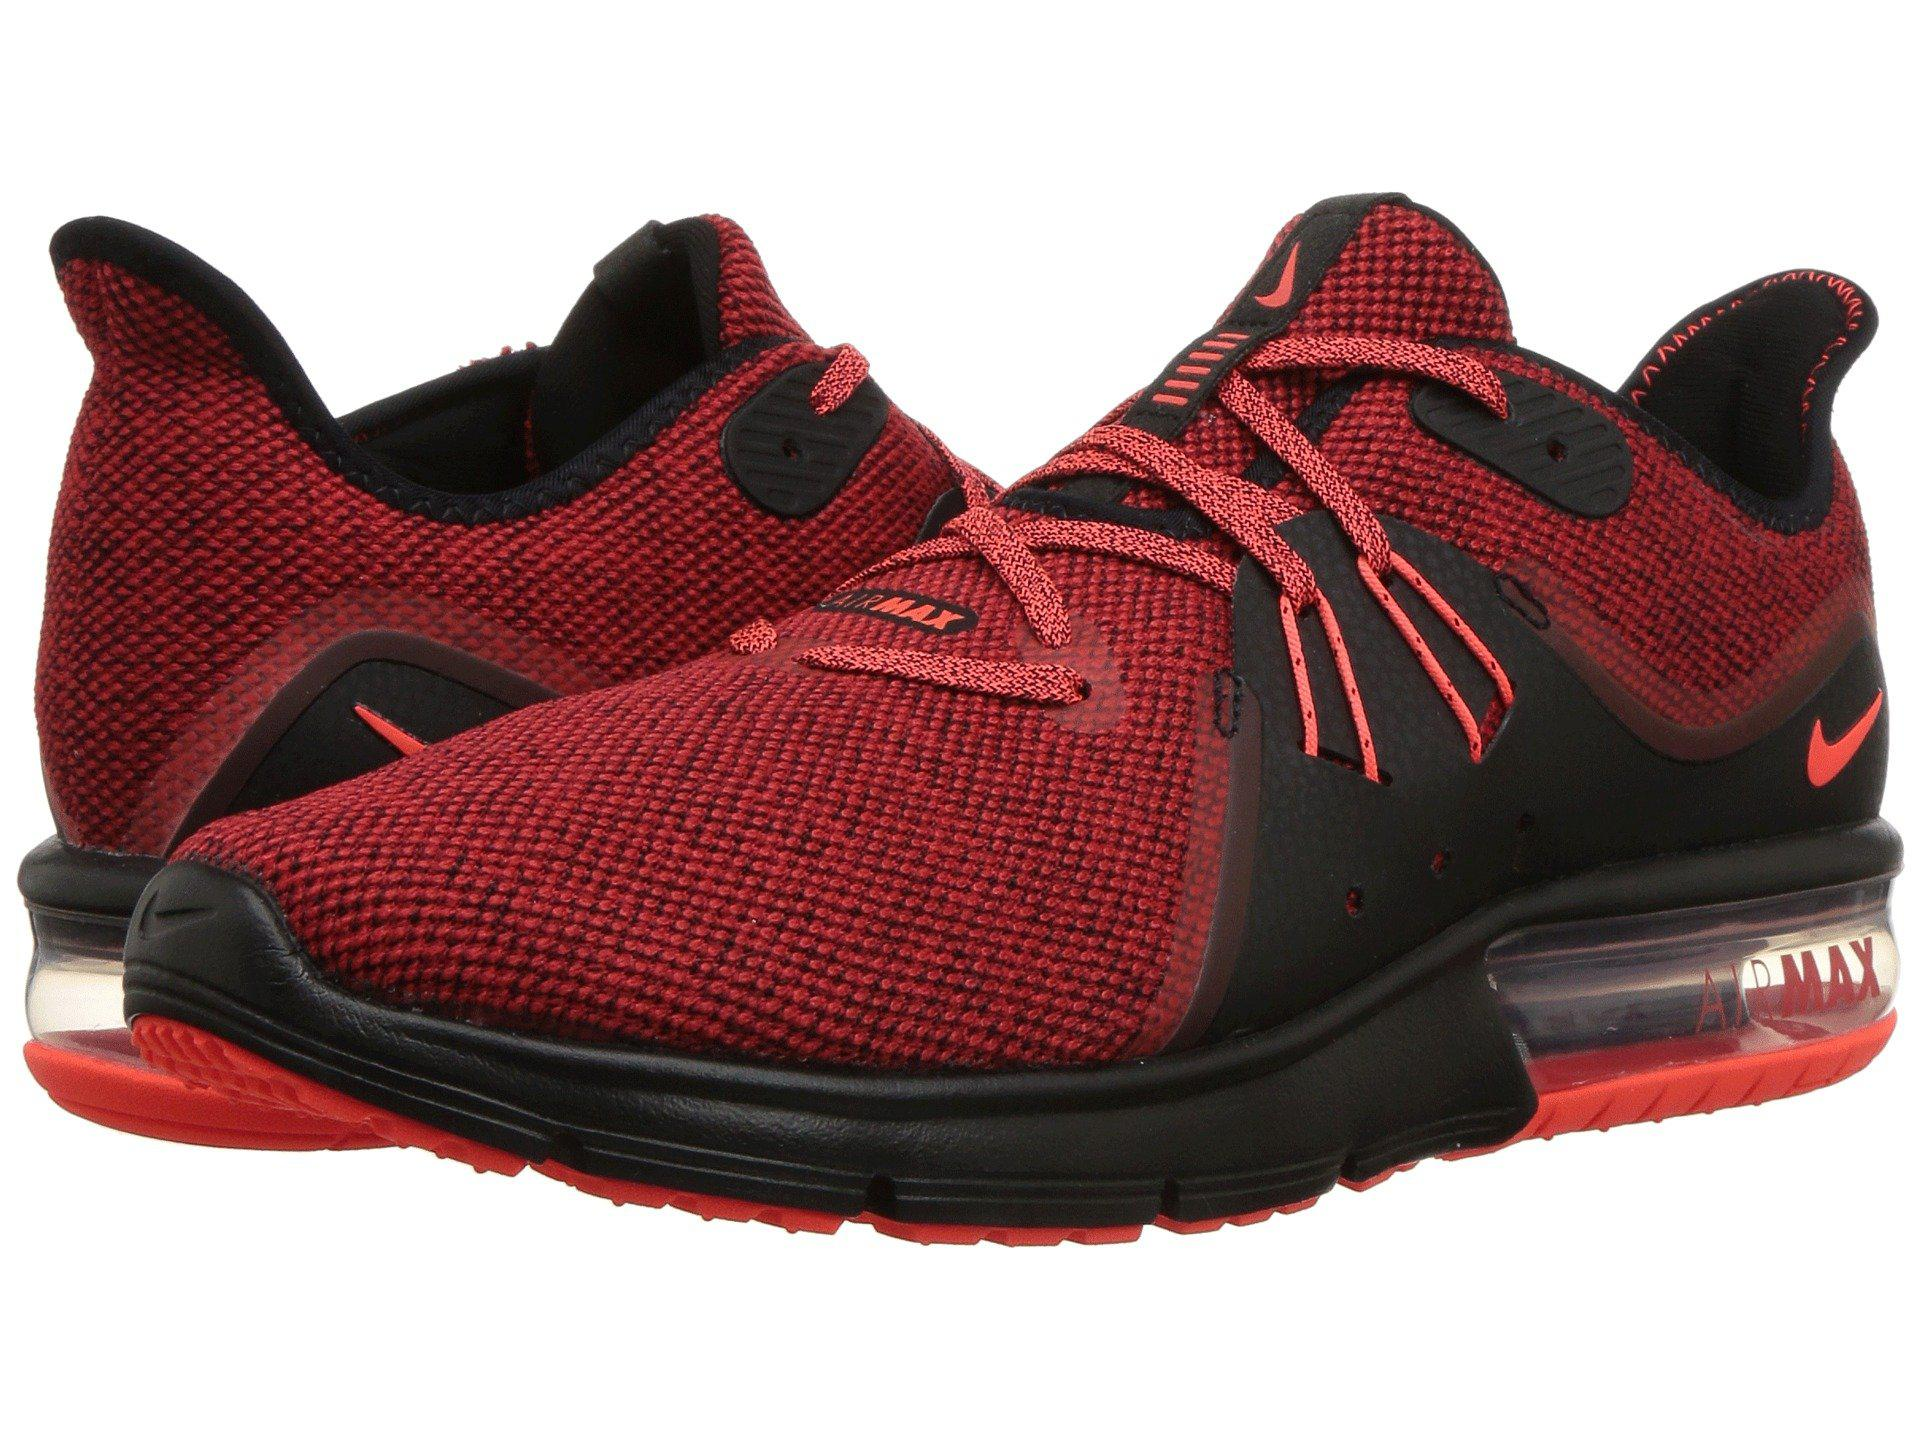 1db41fe5ad Nike Air Max Sequent 3 in Red for Men - Lyst